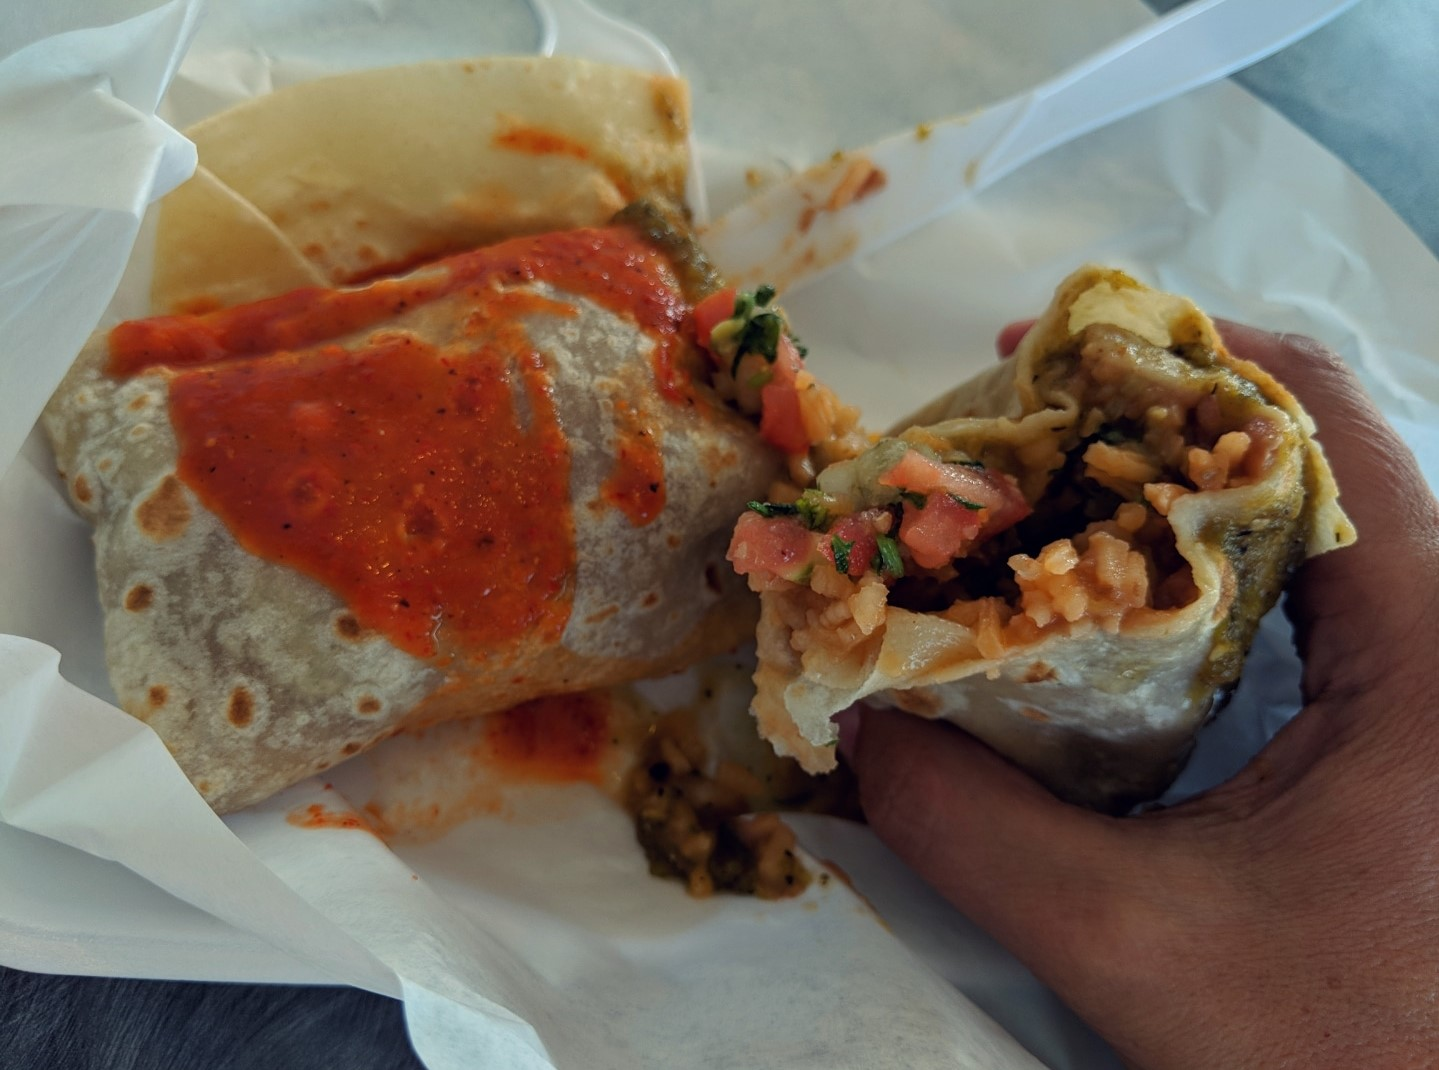 Real good veg burrito and a very funny name-Beaver Taco's!